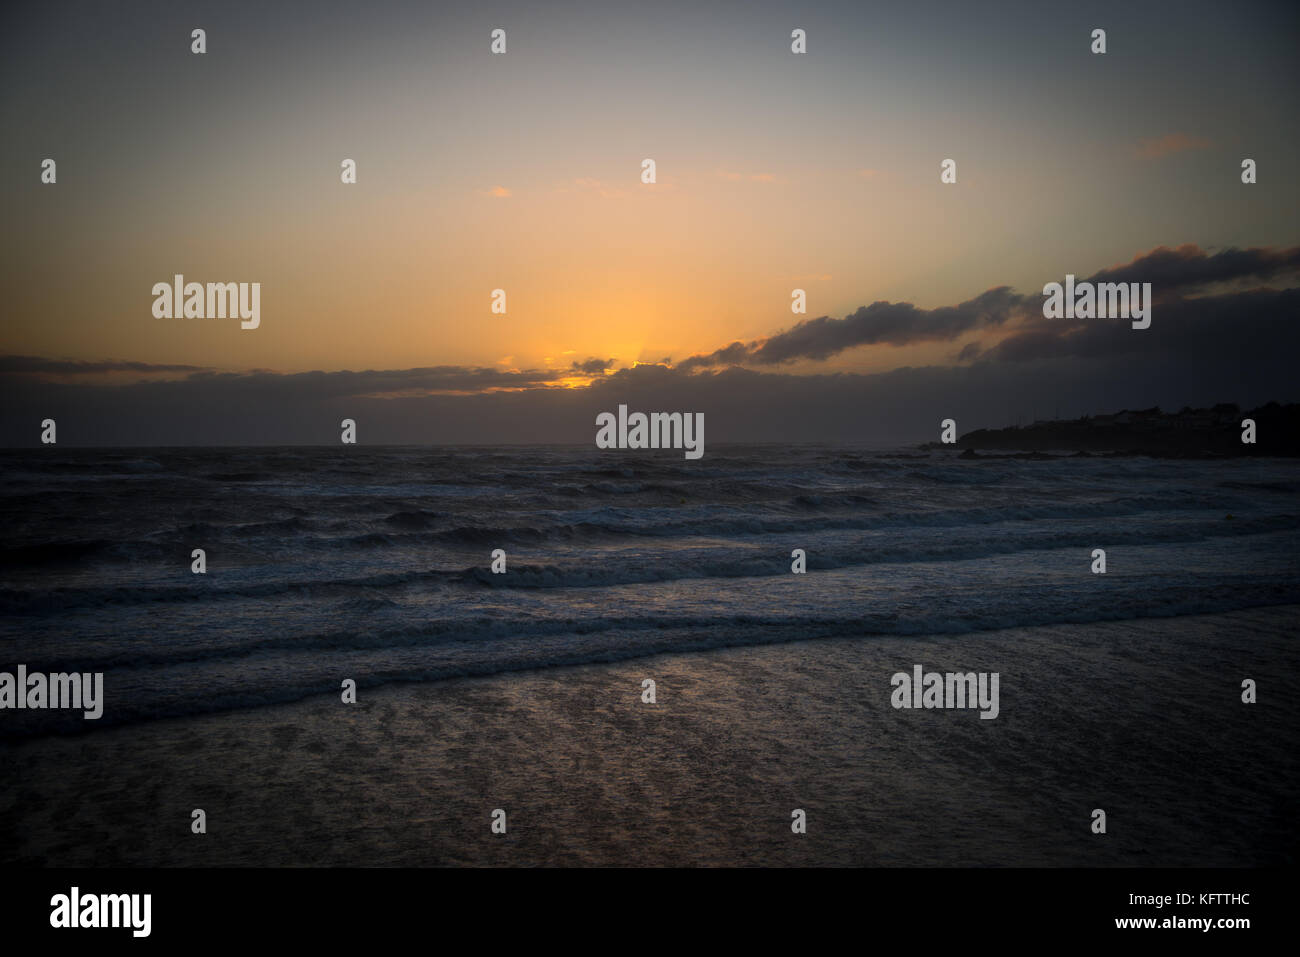 gentle waves on the beach at sunset - Stock Image